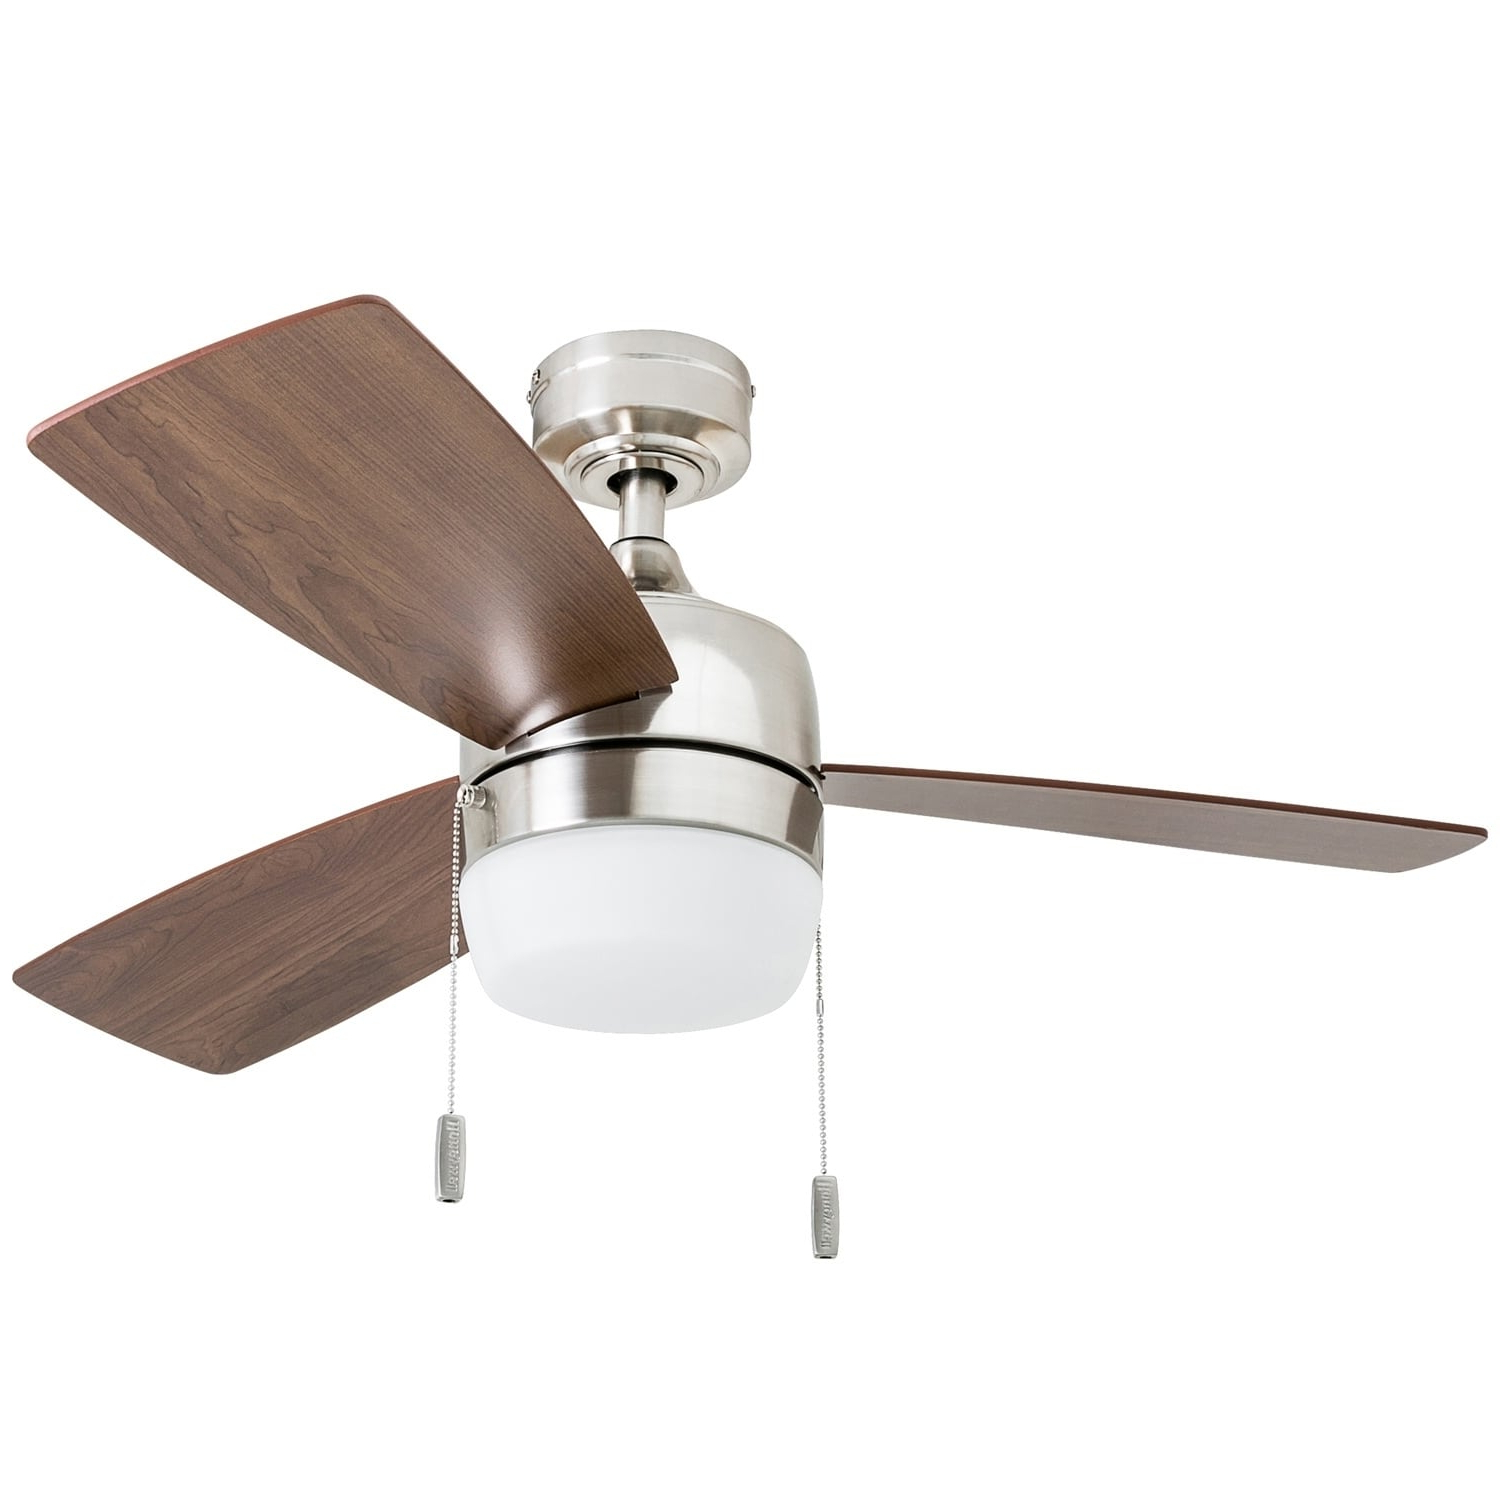 Honeywell Barcadero Modern Brushed Nickel Led Ceiling Fan With Regard To Famous Beltran 5 Blade Ceiling Fans (View 12 of 20)